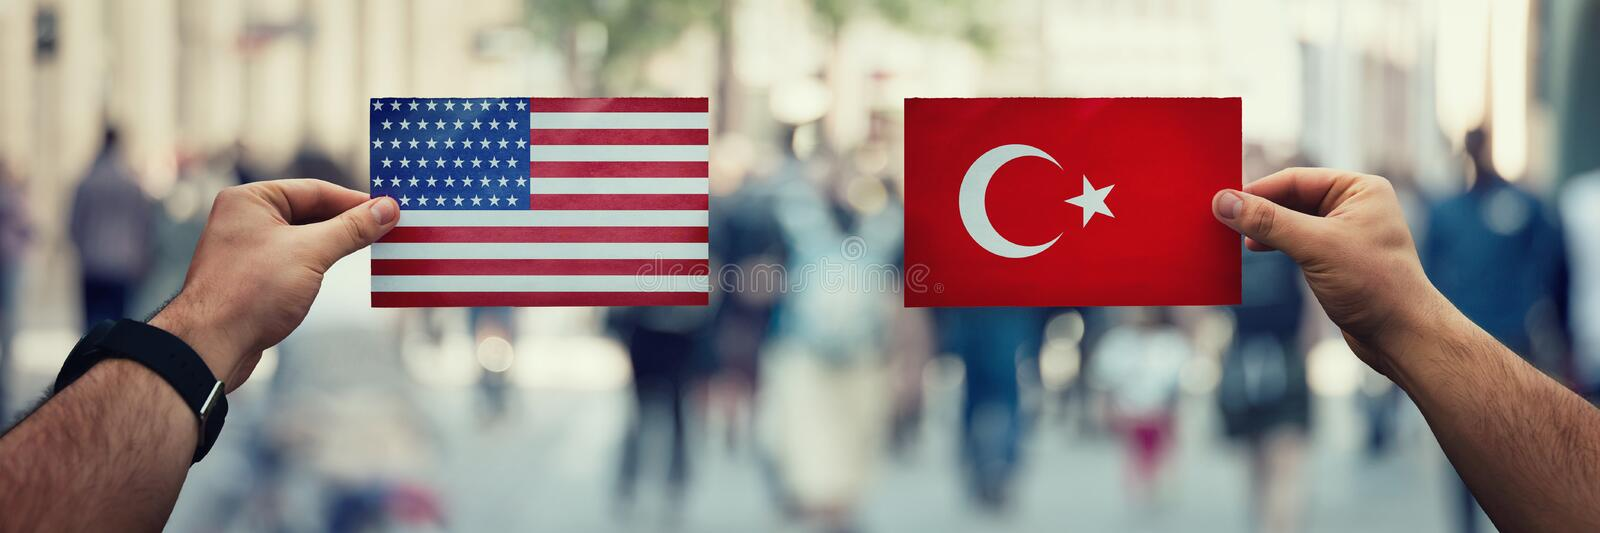 Two hands holding different flags, US vs Turkey on politics arena over crowded street background. Diplomacy future strategy,. Relations between countries royalty free stock photos